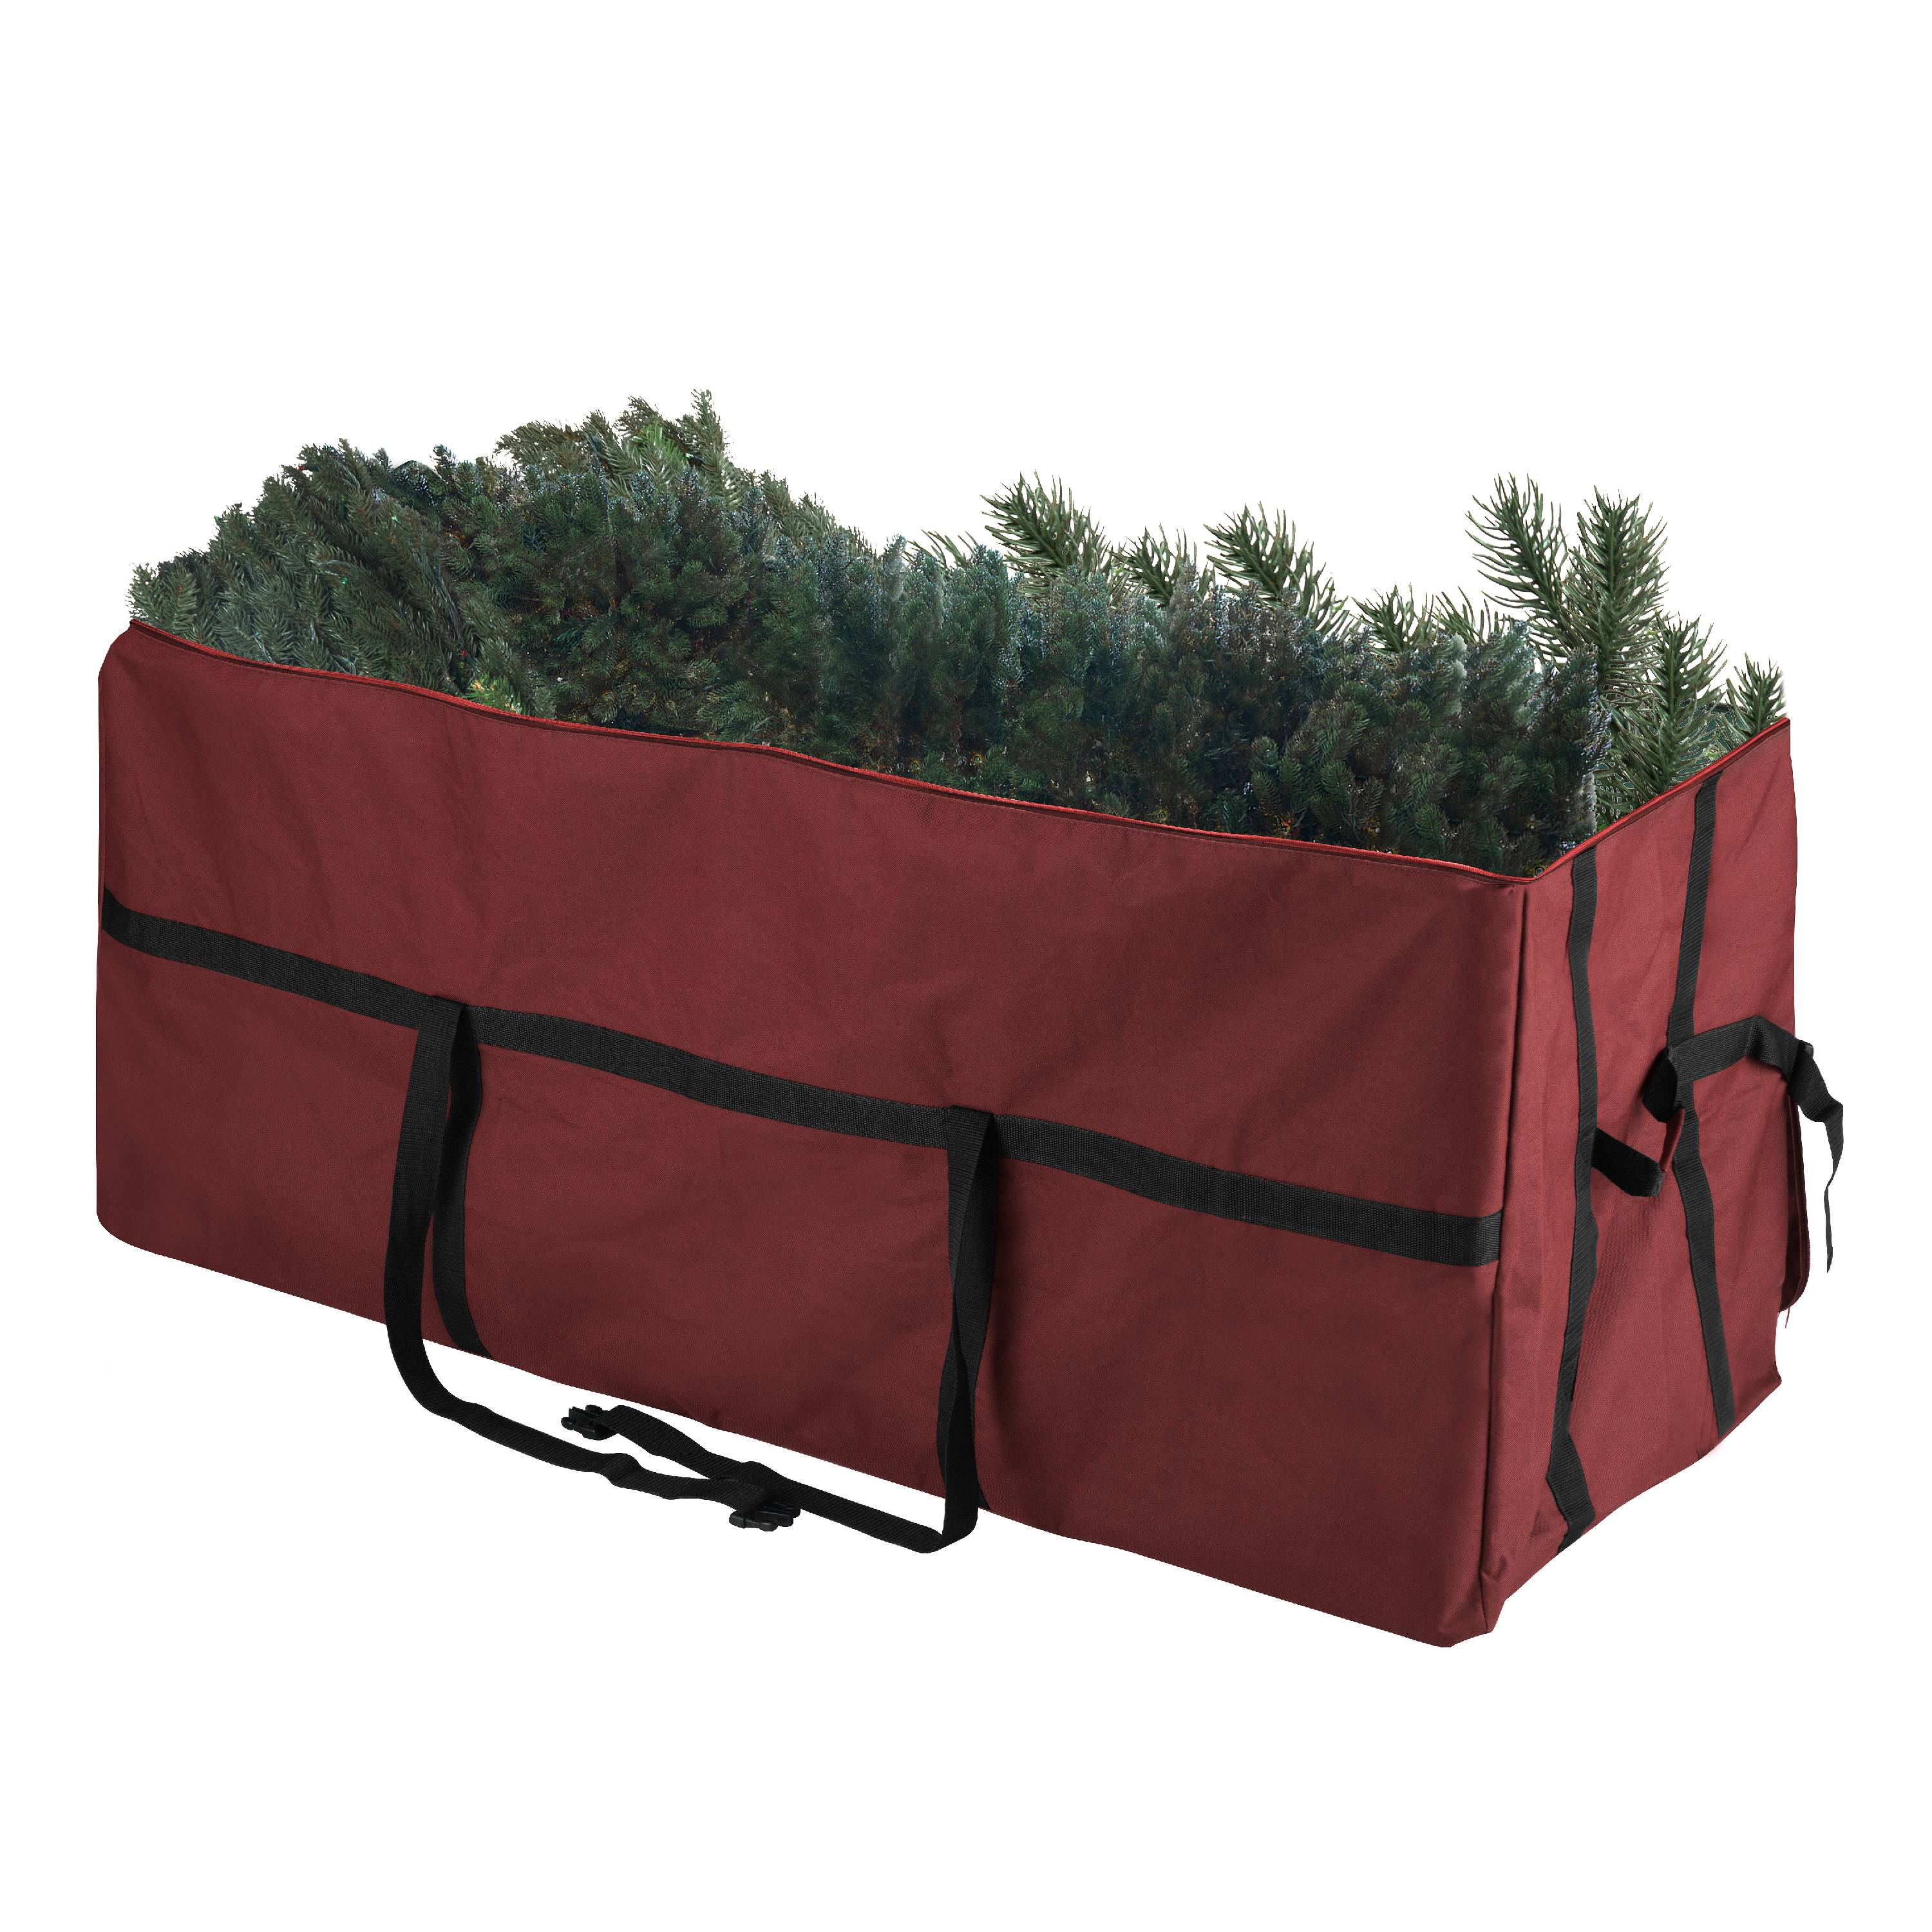 Elf Stor Heavy Duty Red Canvas Christmas Tree Storage Bag Large For 7.5 ft Tree